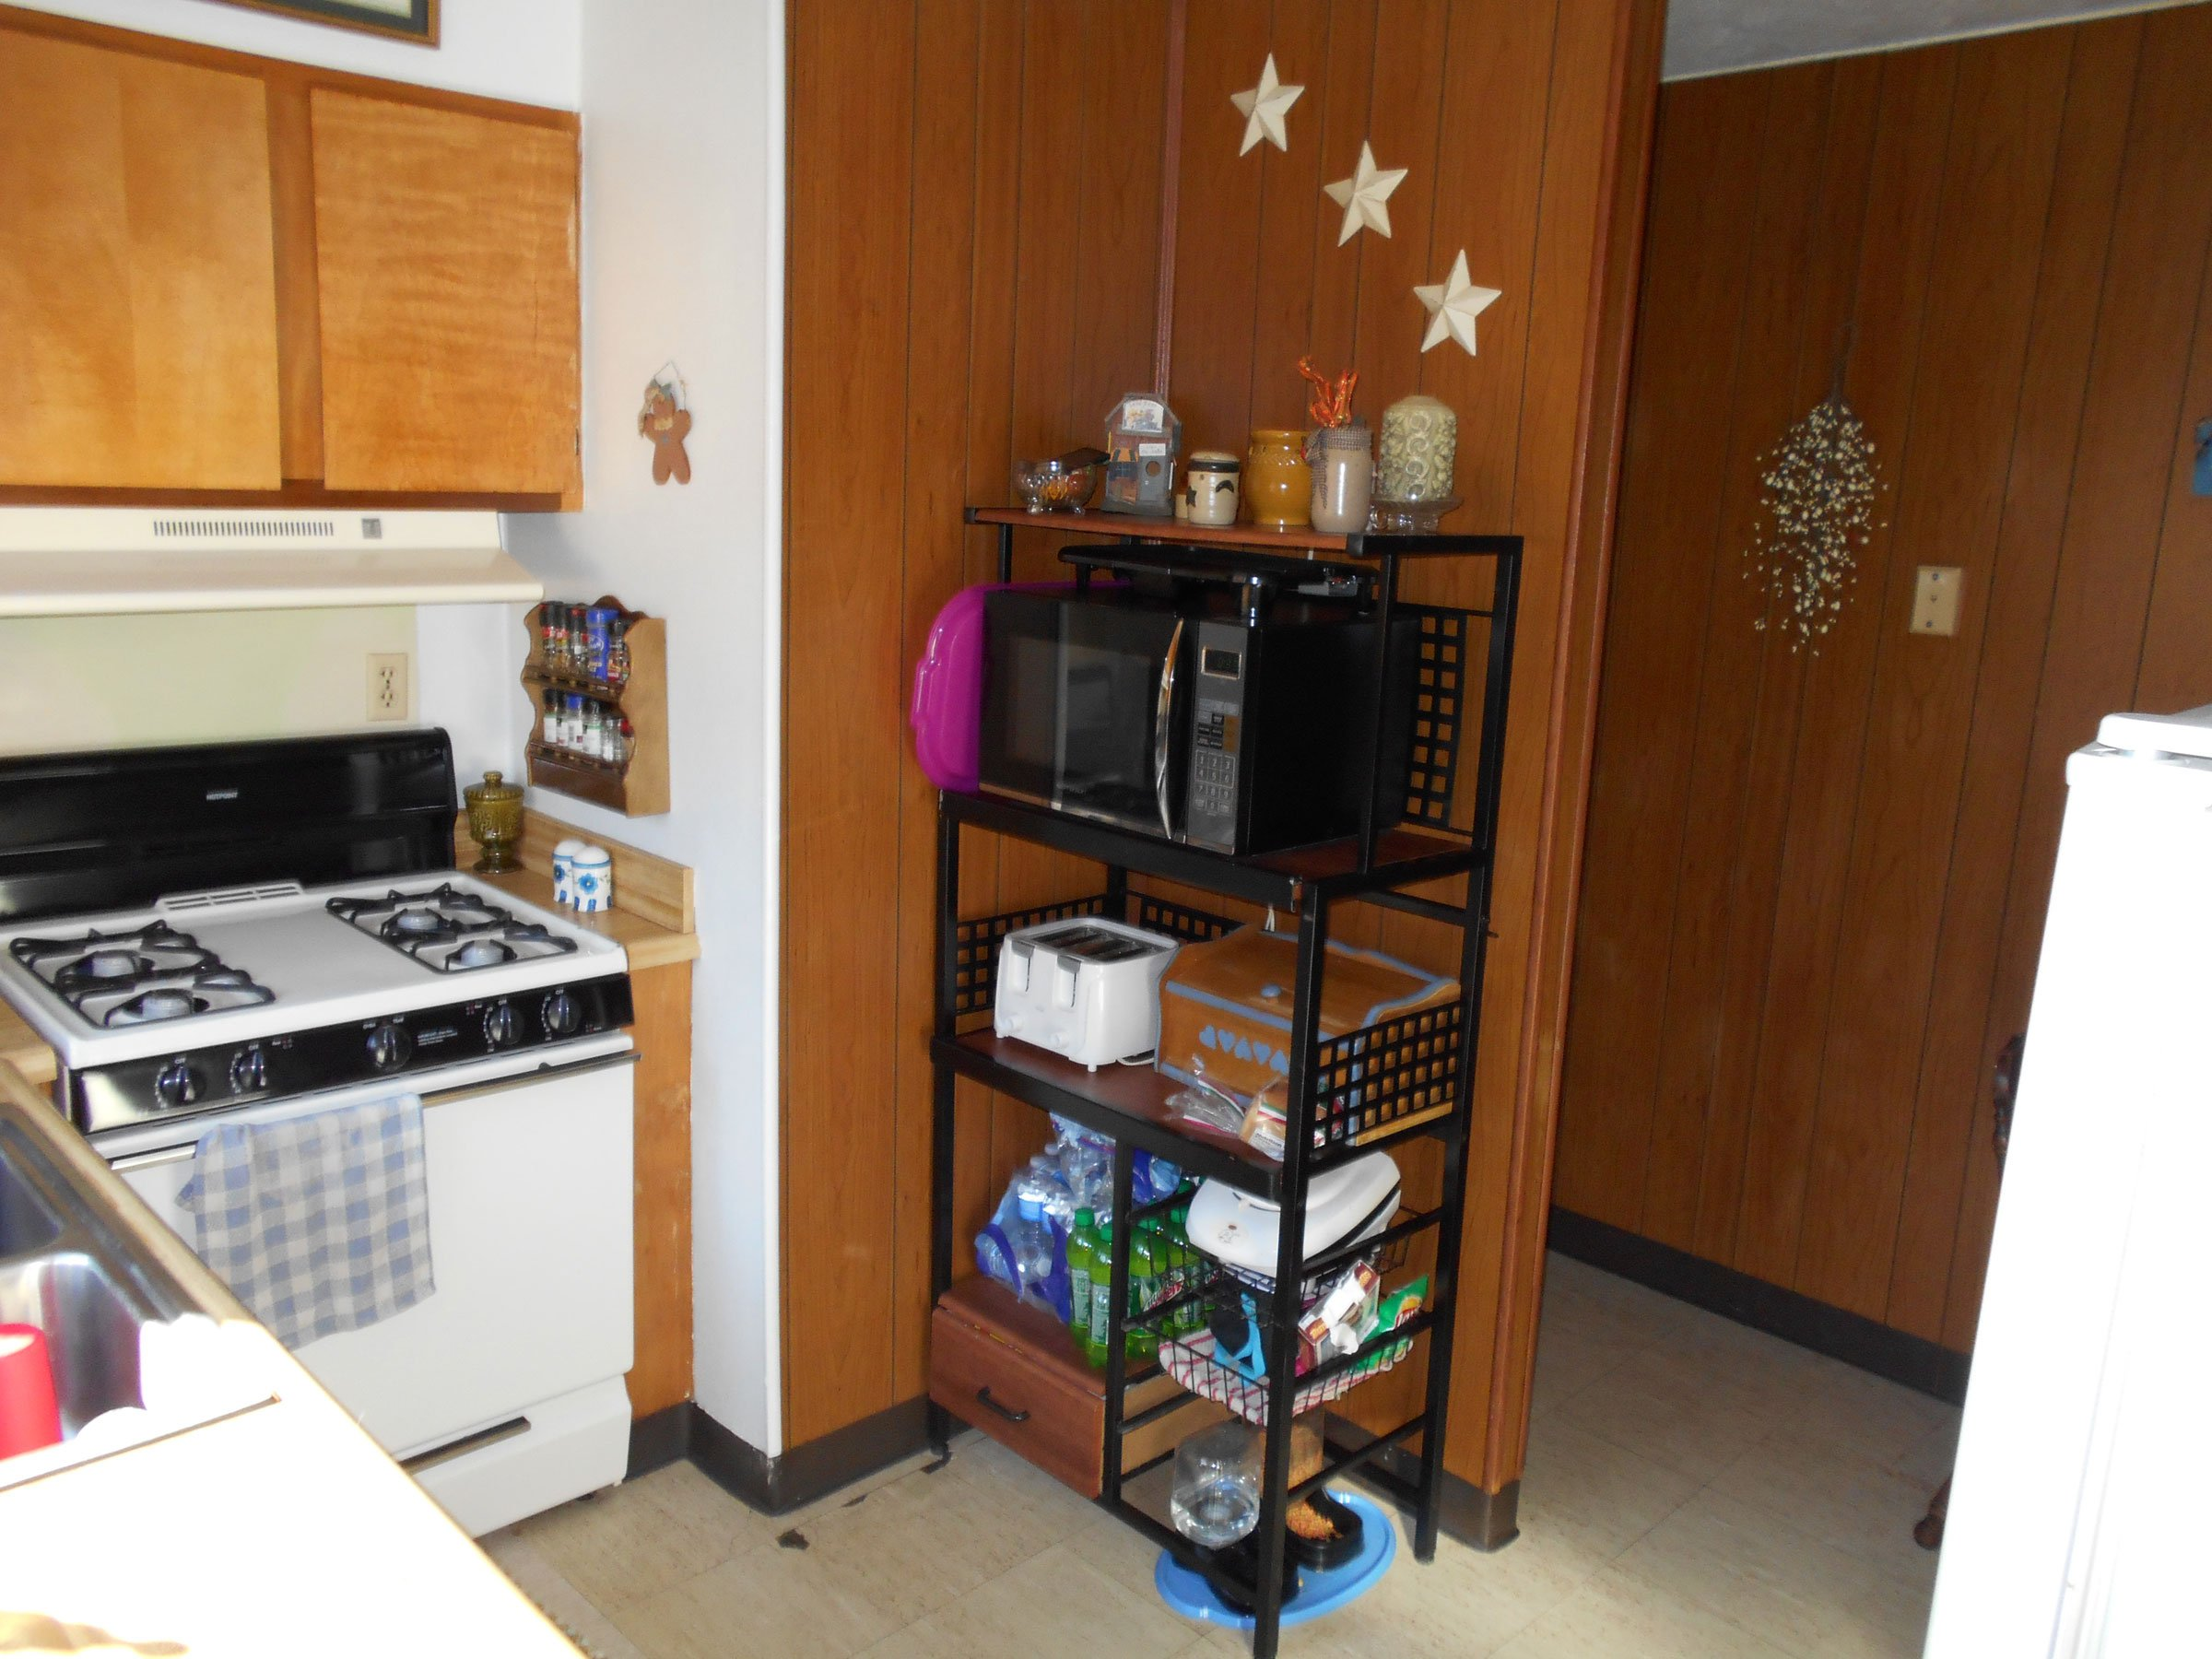 Rentals include appliances